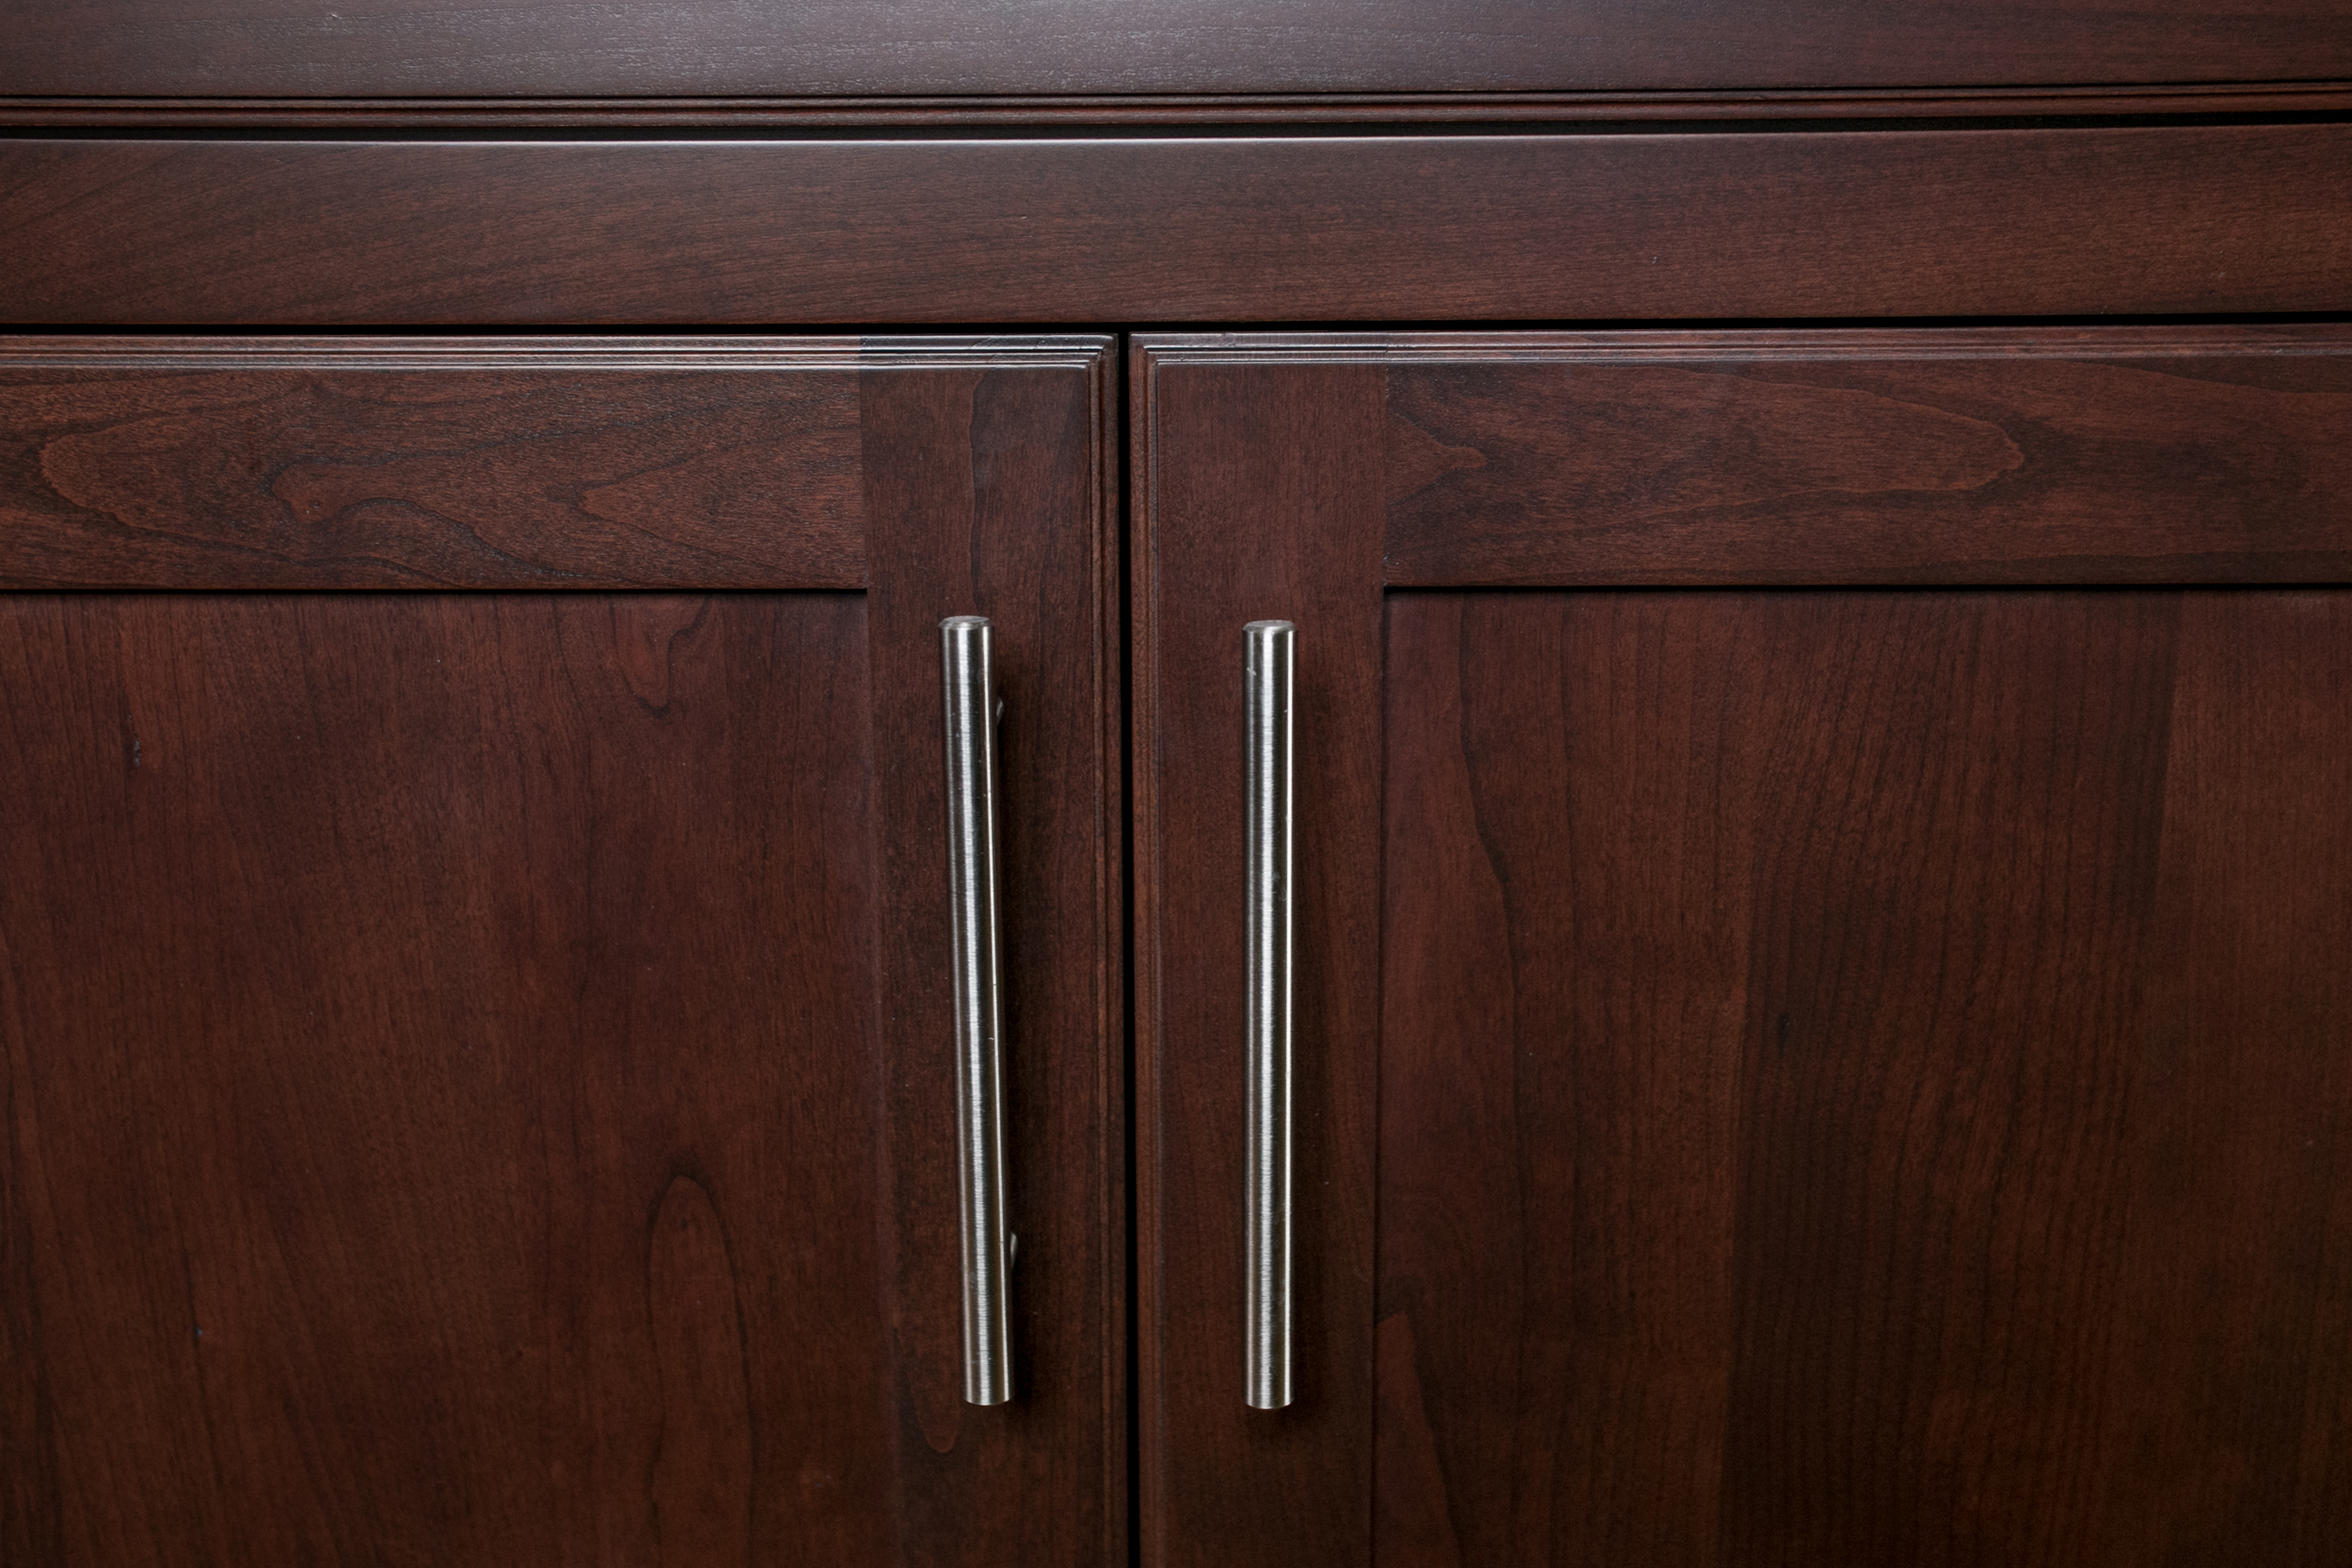 Contemporary Cherry Kitchen Pulls